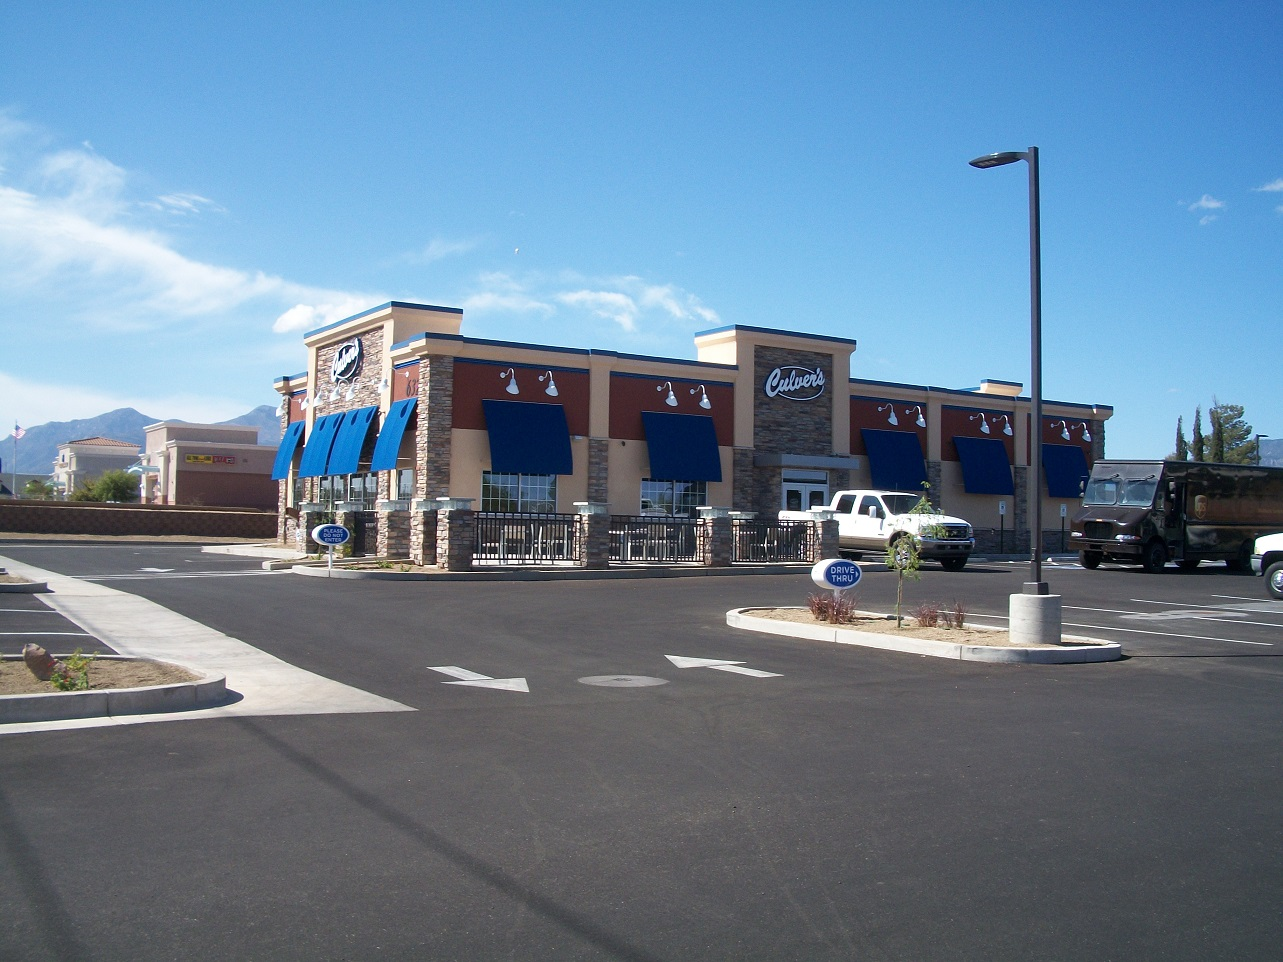 We find 1 Culvers locations in Chandler (AZ). All Culvers locations near you in Chandler (AZ).Location: W Ray Rd, Chandler, , AZ.